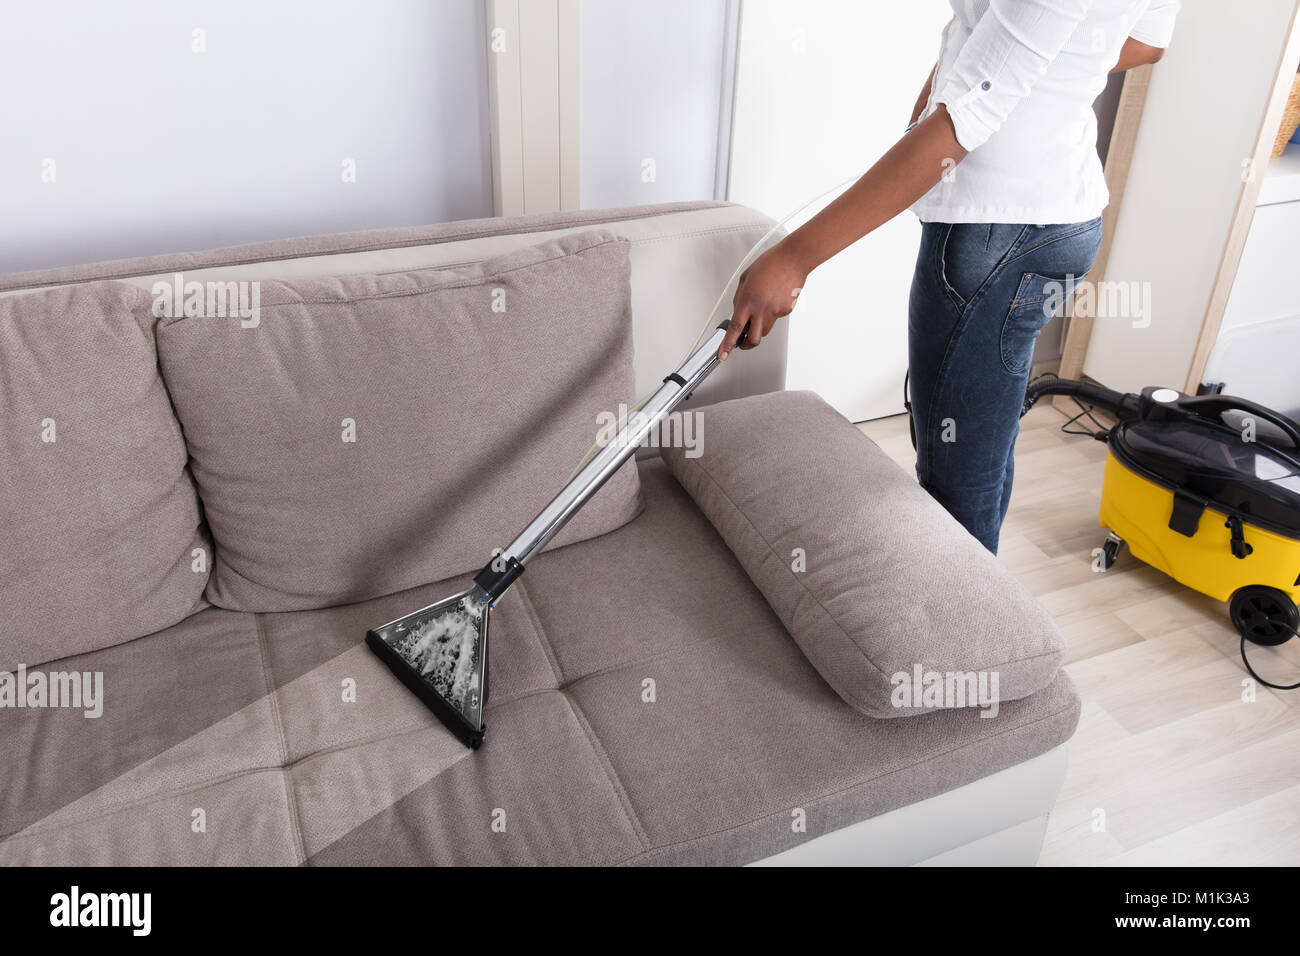 Housewifeu0027s Hand Cleaning Sofa With Vacuum Cleaner At Home